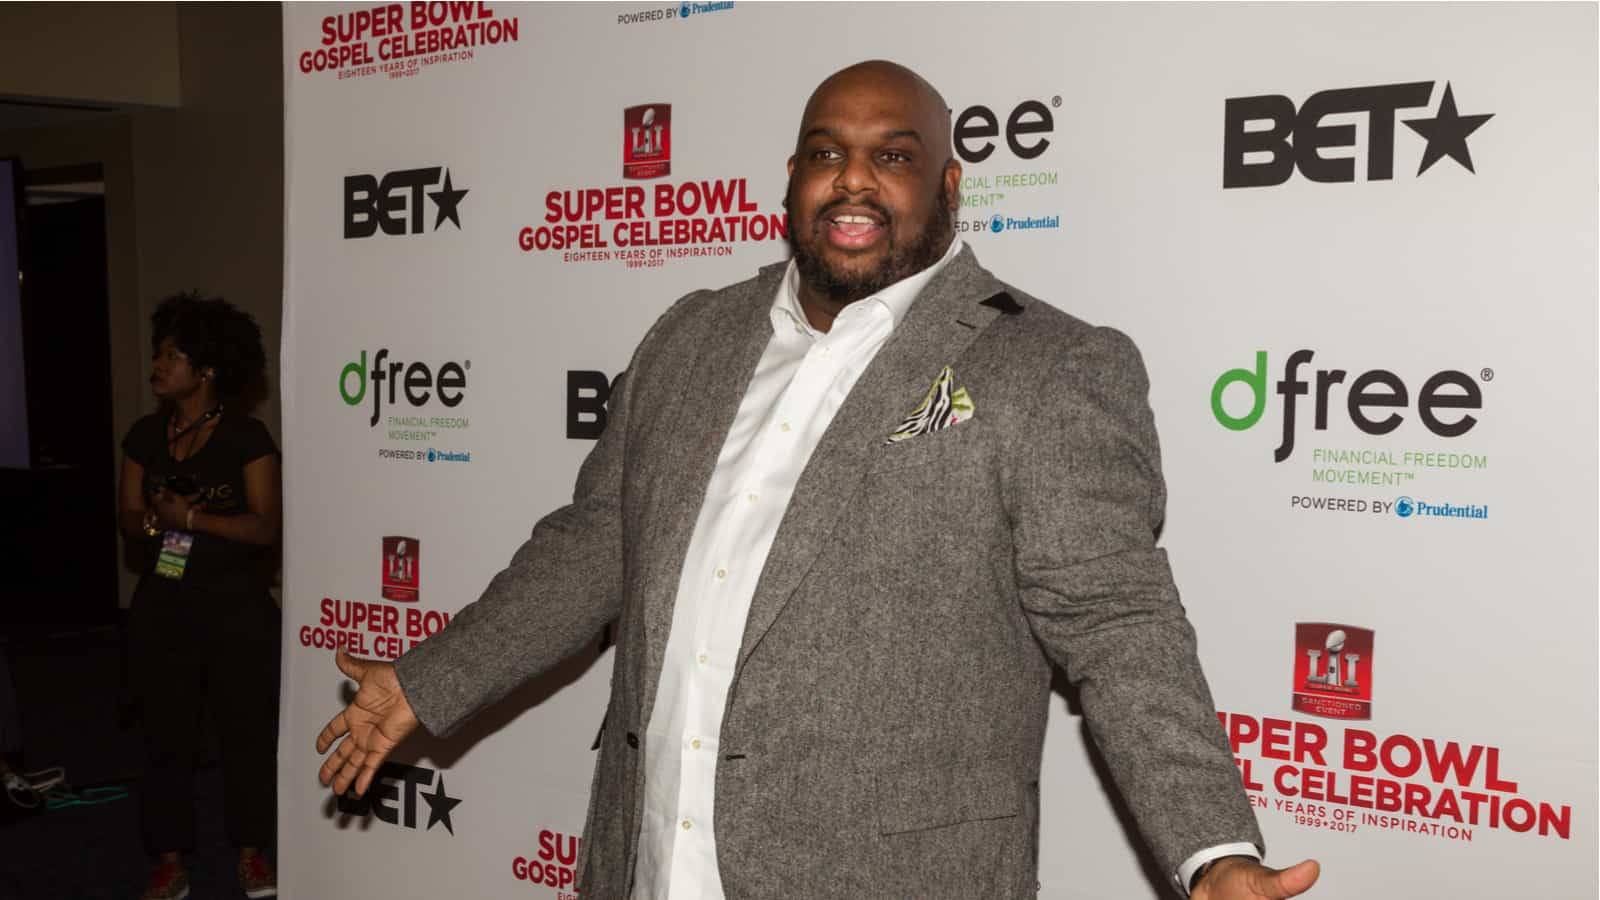 Pastor John Gray Seemingly Admits to Cheating on Wife